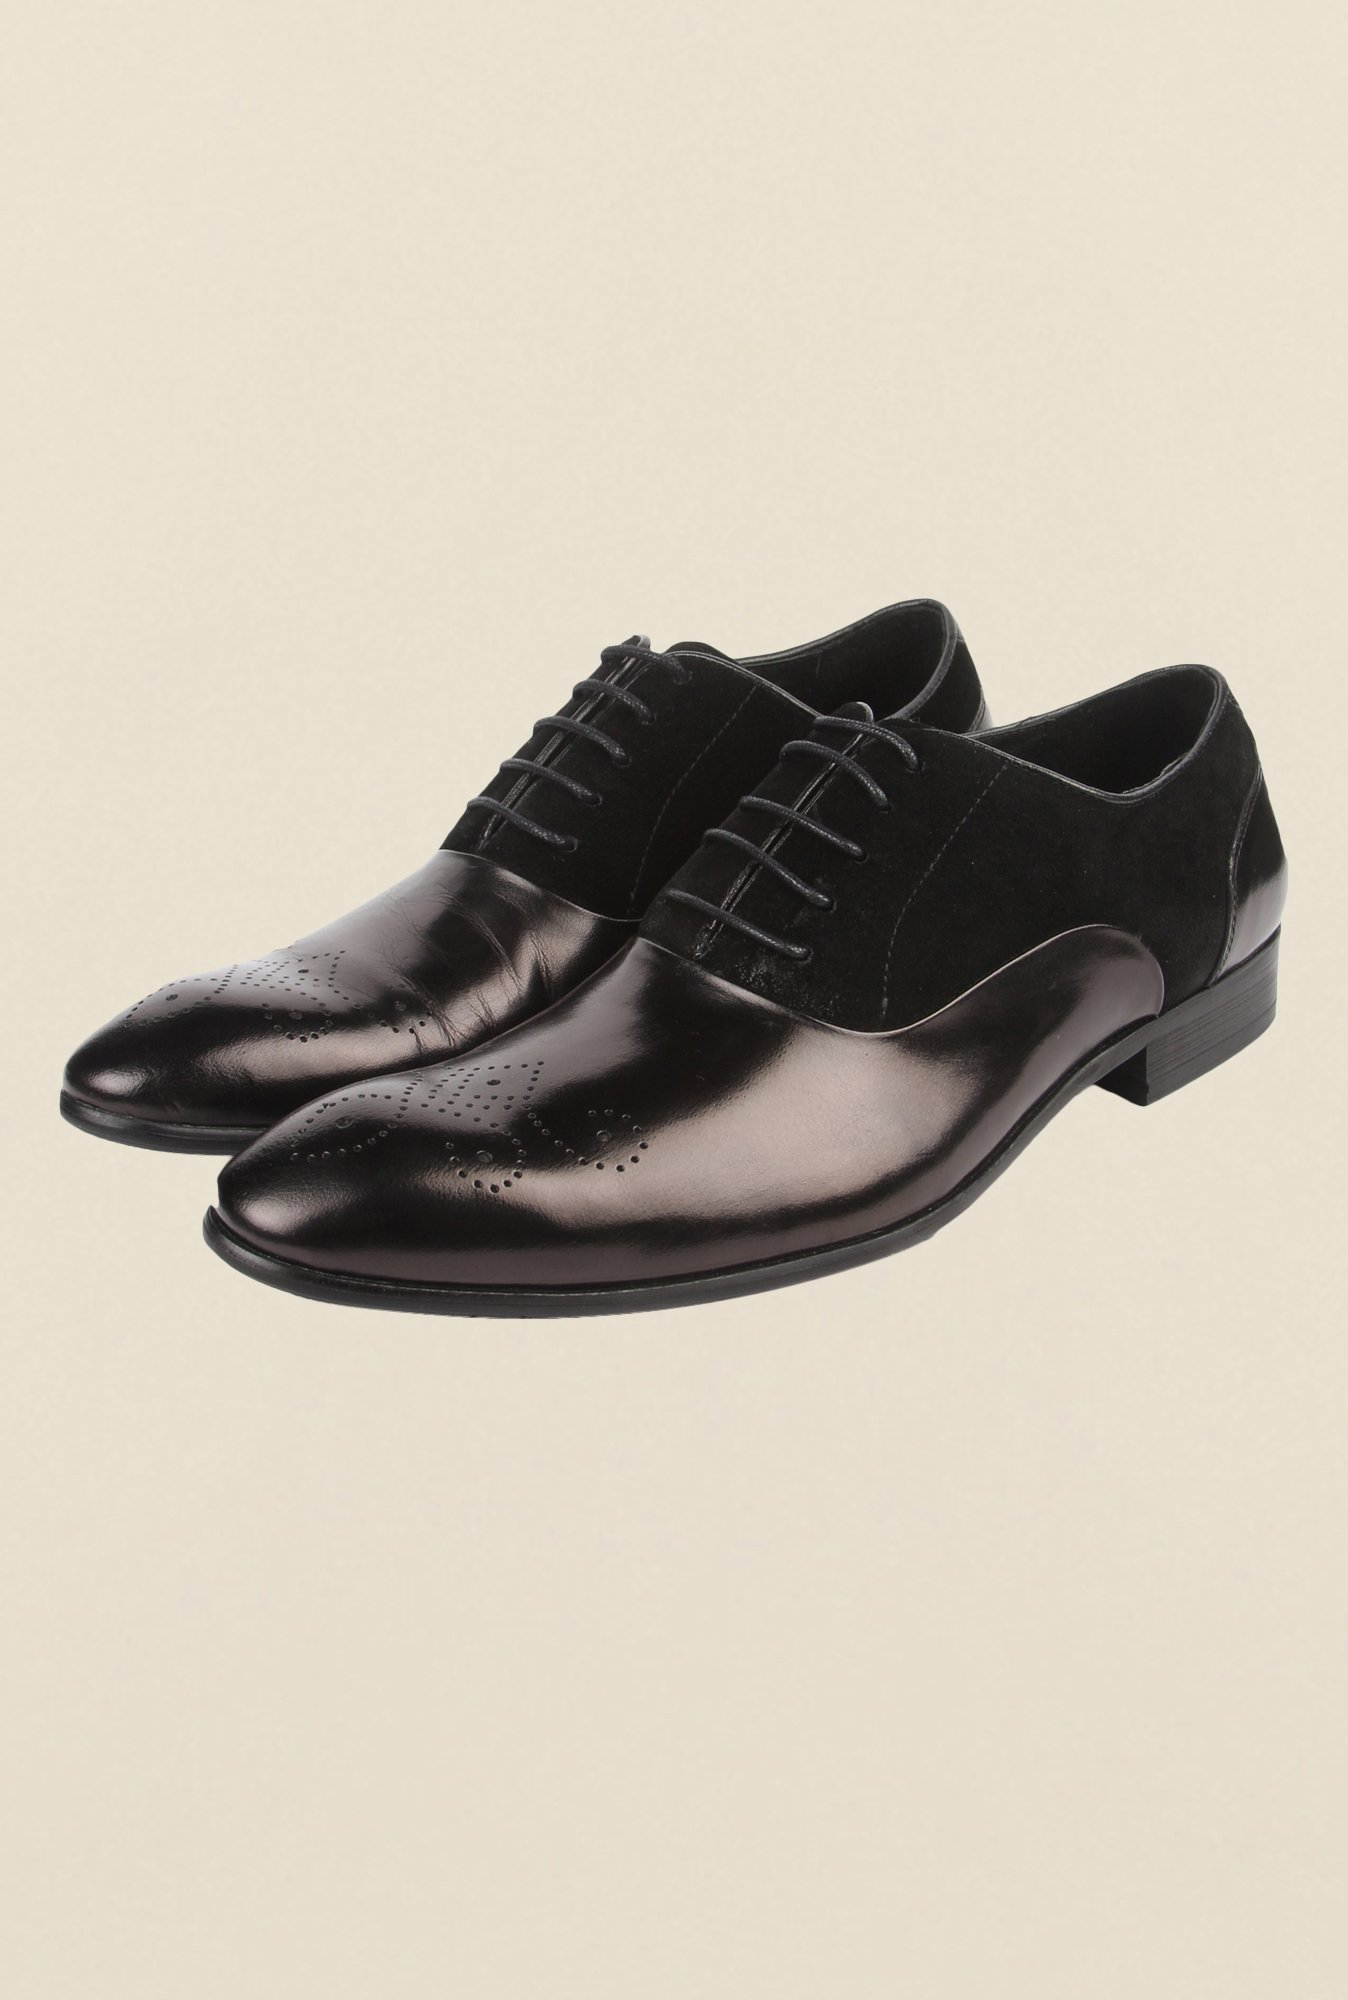 Cobblerz Black Brogue Leather Shoes